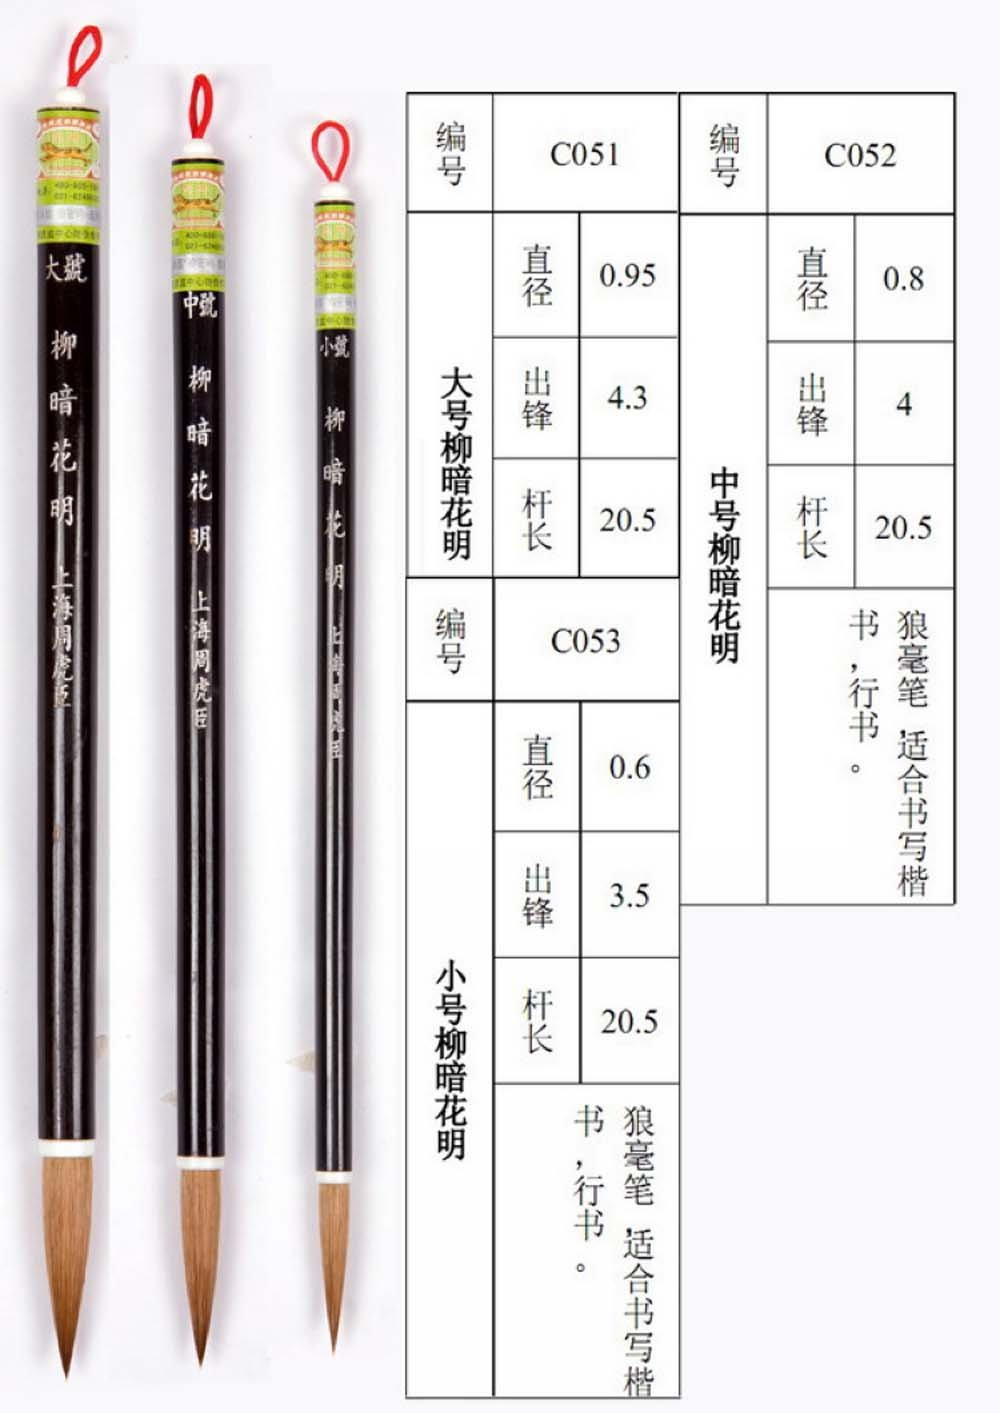 S,M,L 3pcs Liu'an Huaming Wolf Hair Zhouhuchen Tiger Chinese Calligraphy and Painting Brush